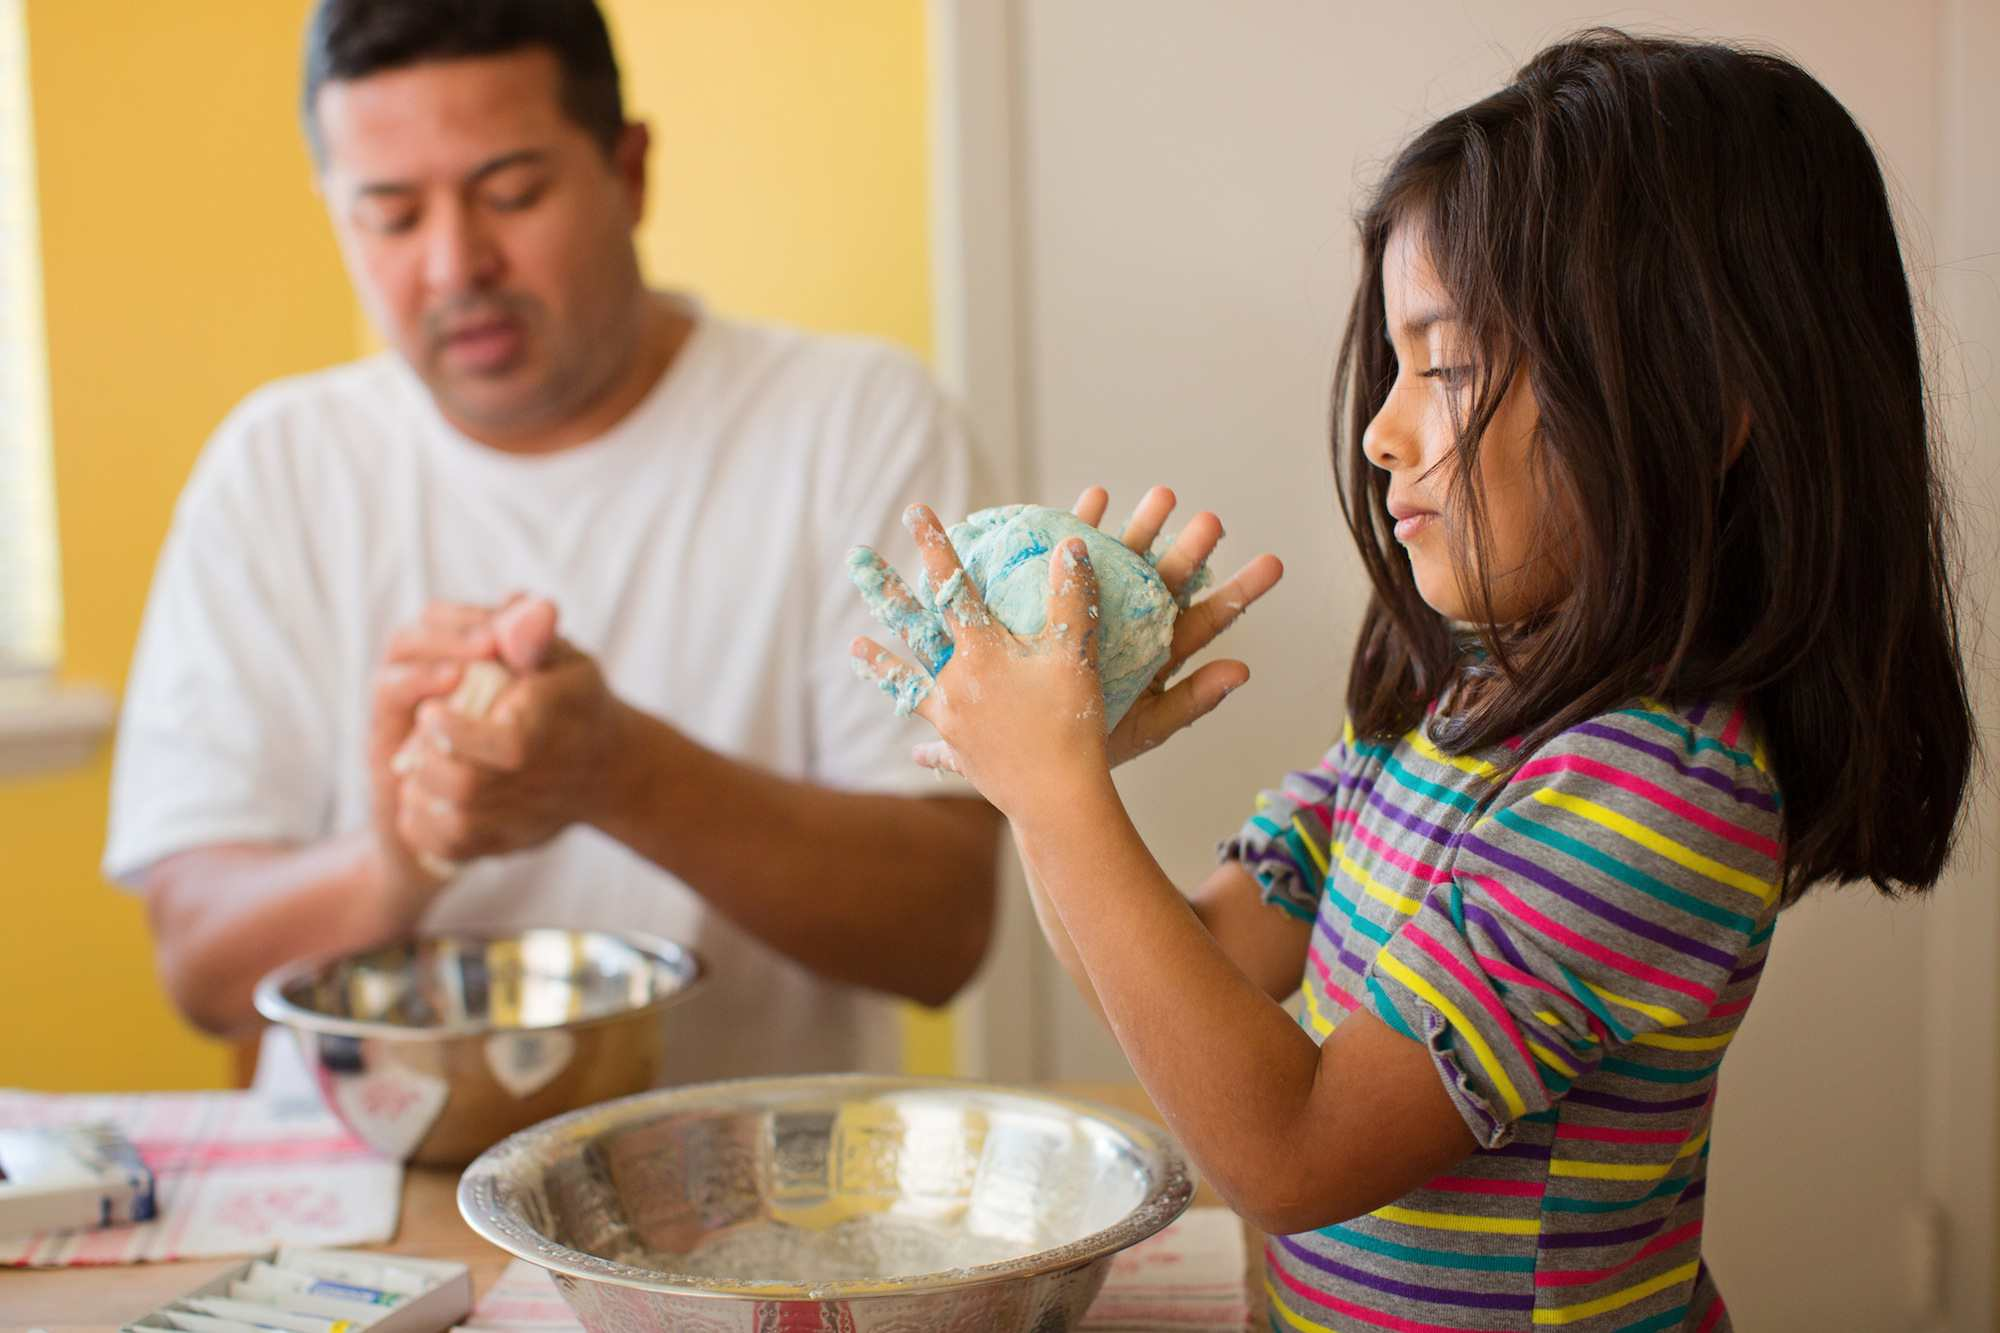 Father and daughter making homemade playdough